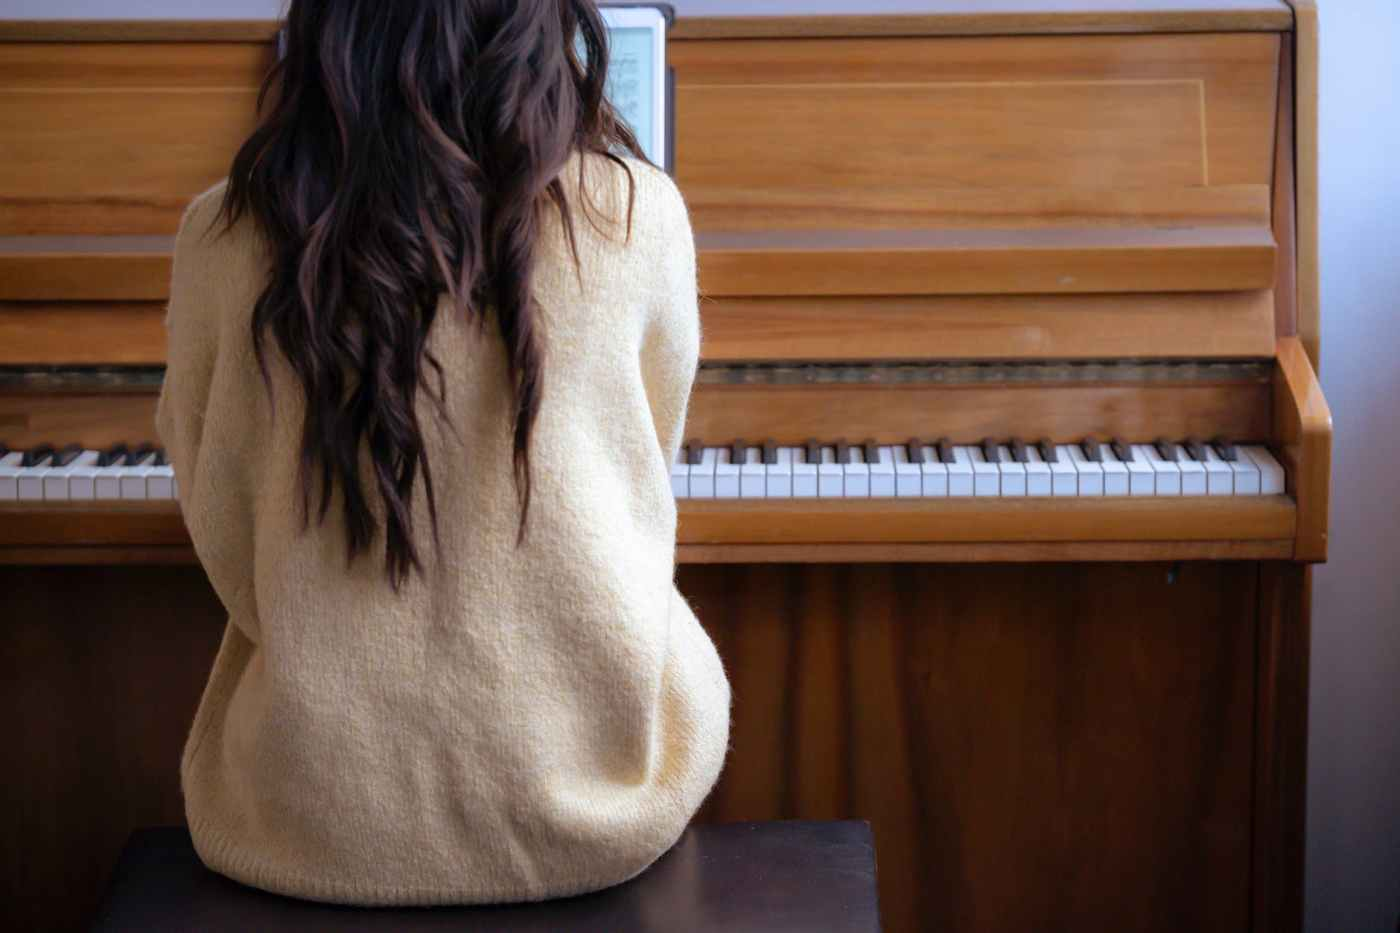 woman playing piano at free time